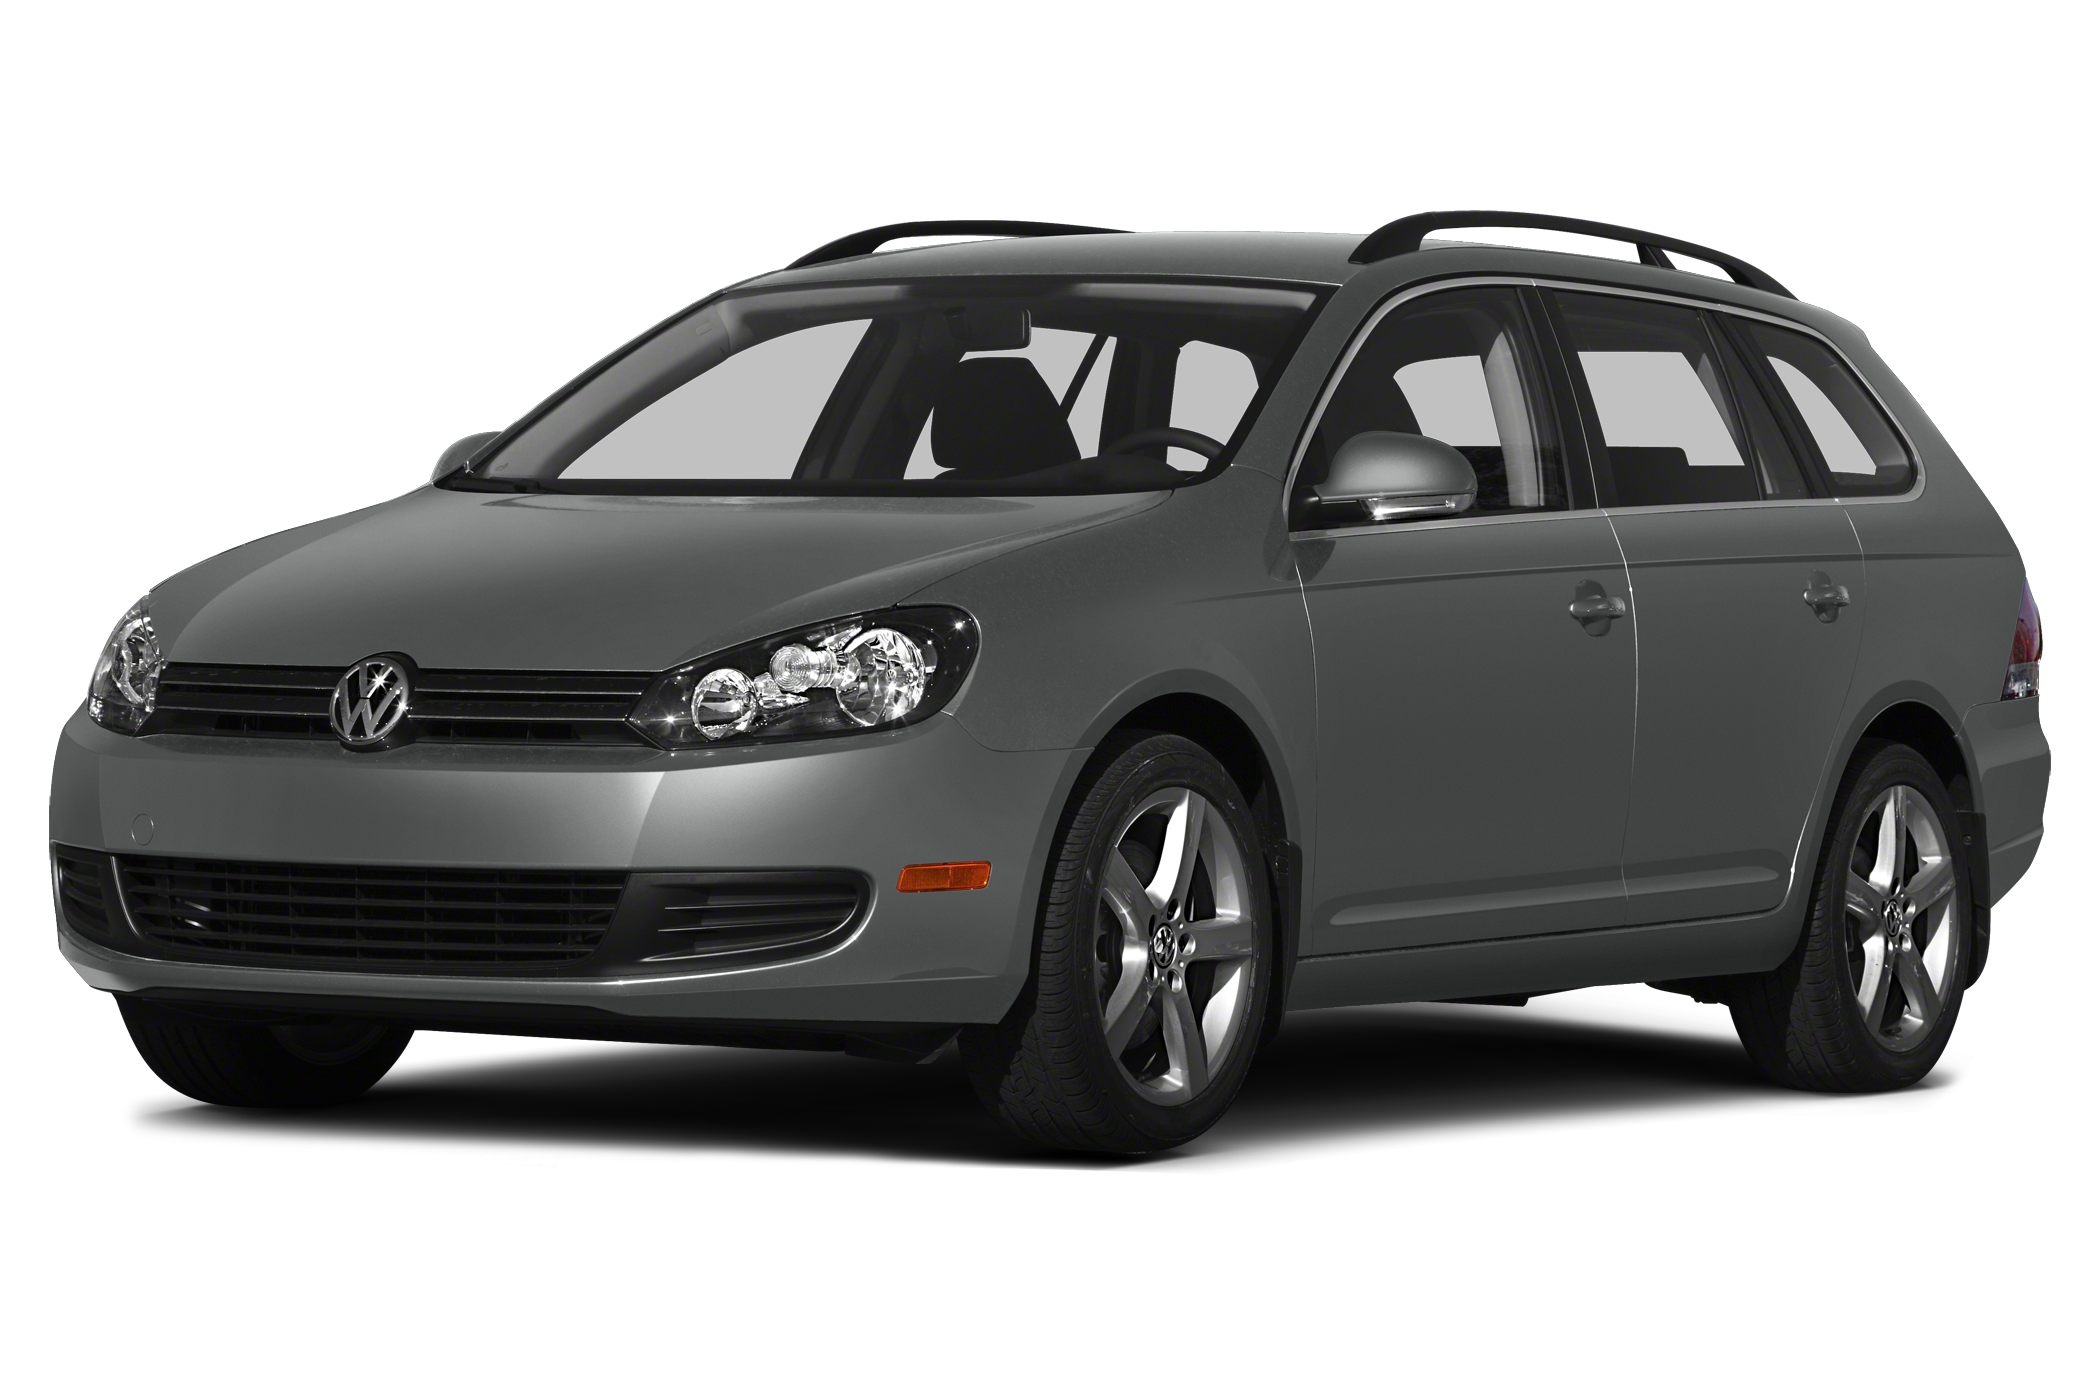 2014 Volkswagen Jetta SportWagen TDI Wagon for sale in Eau Claire for $29,570 with 106 miles.